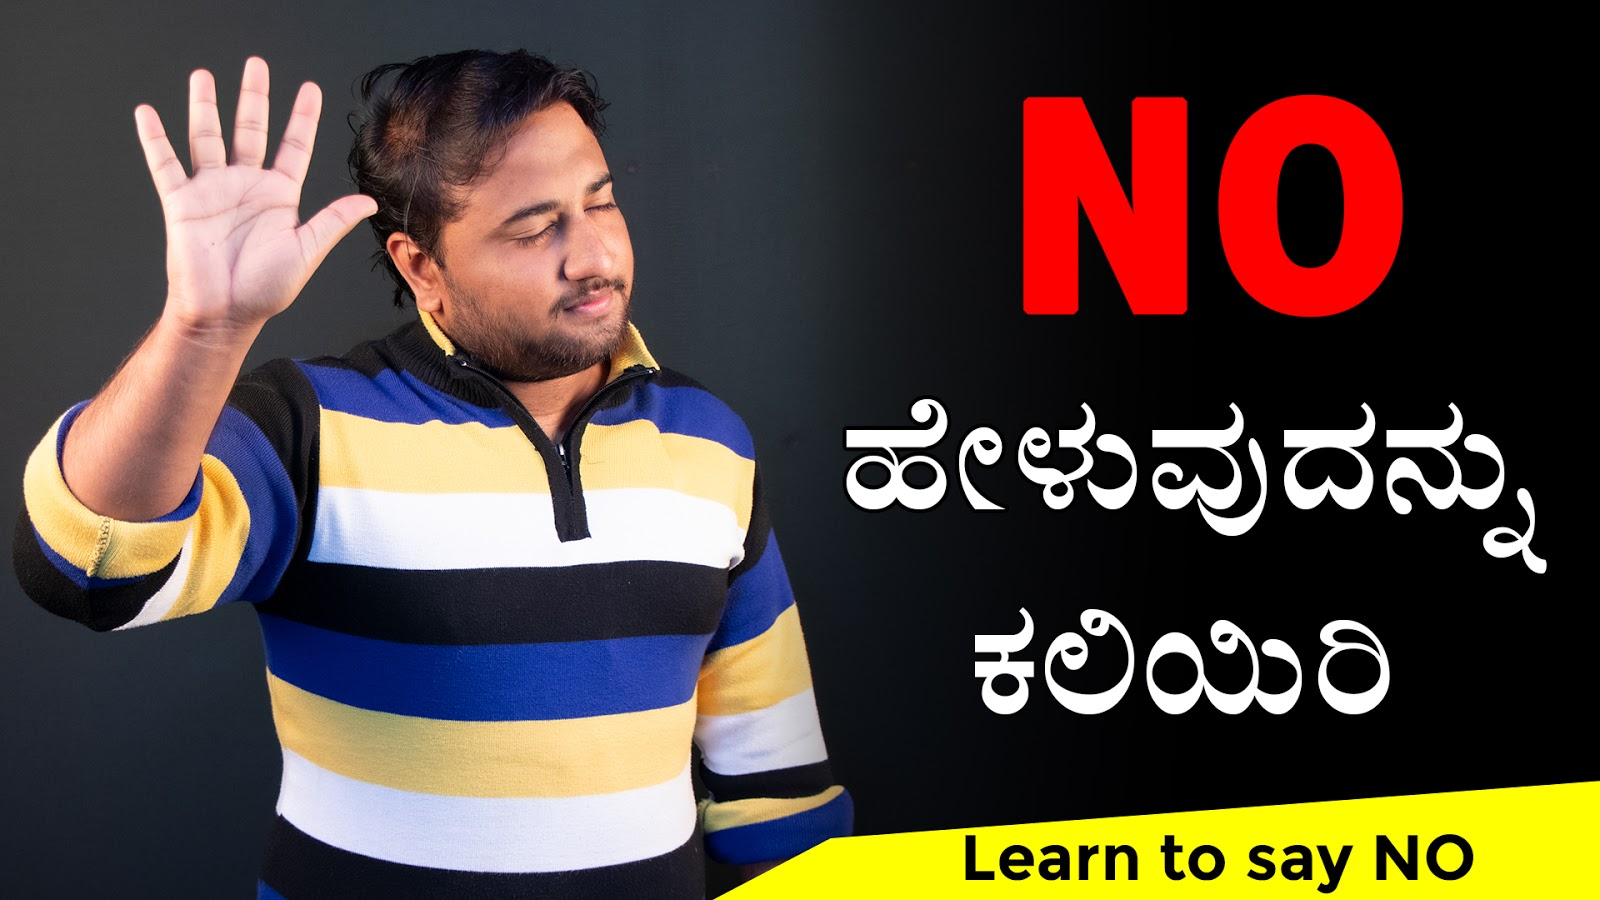 NO ಹೇಳುವುದನ್ನು ಕಲಿಯಿರಿ : Learn to say NO in Kannada